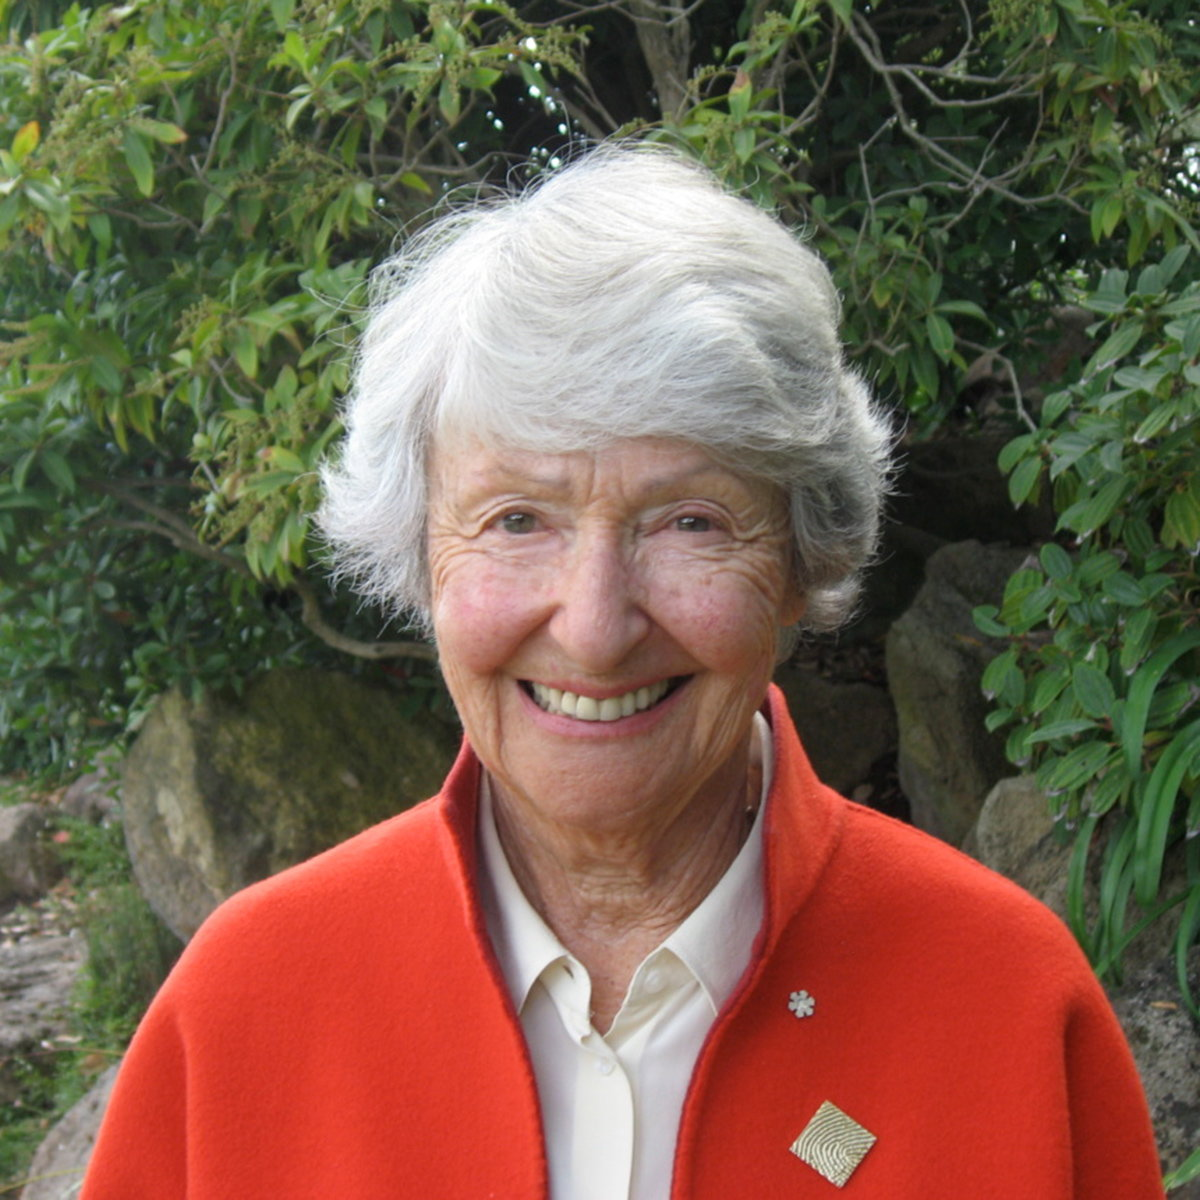 TCLF Announces Cornelia Hahn Oberlander As Namesake of New Landscape Architecture Prize